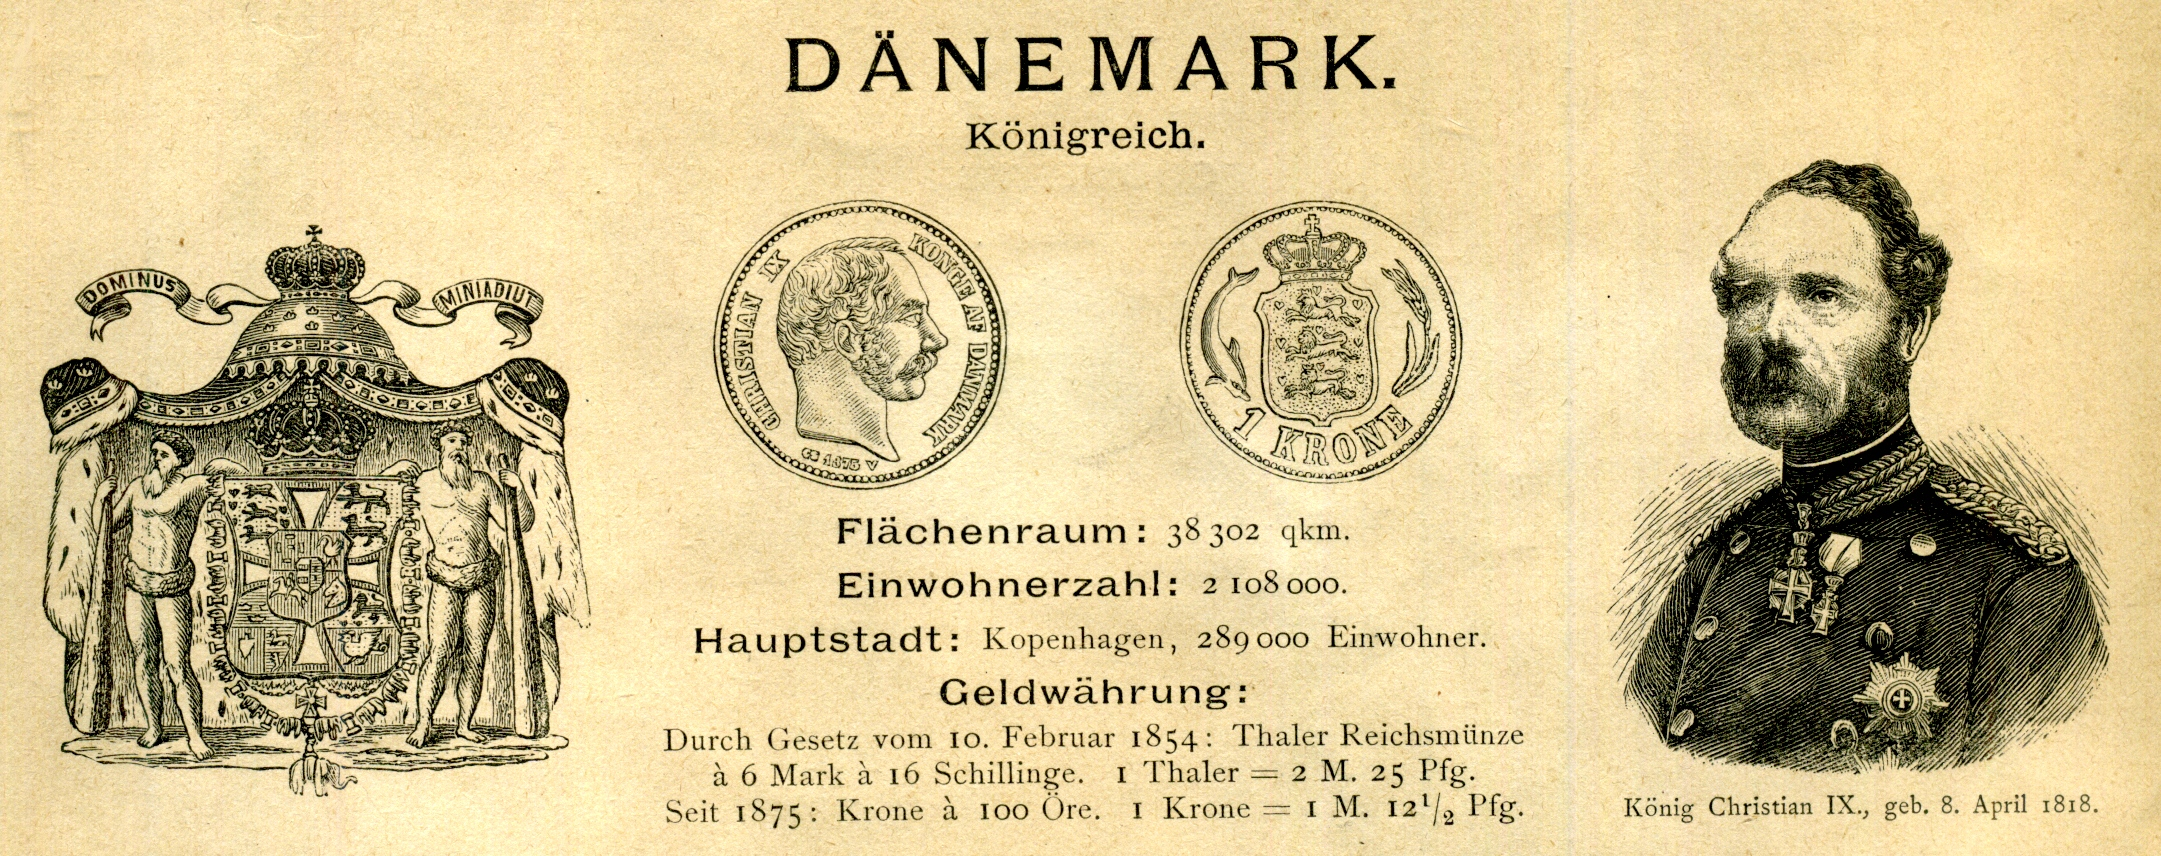 Ausriß aus H. Schwaneberger Internationales illustrirtes Briefmarken-Sammelbuch, 11. Auflage